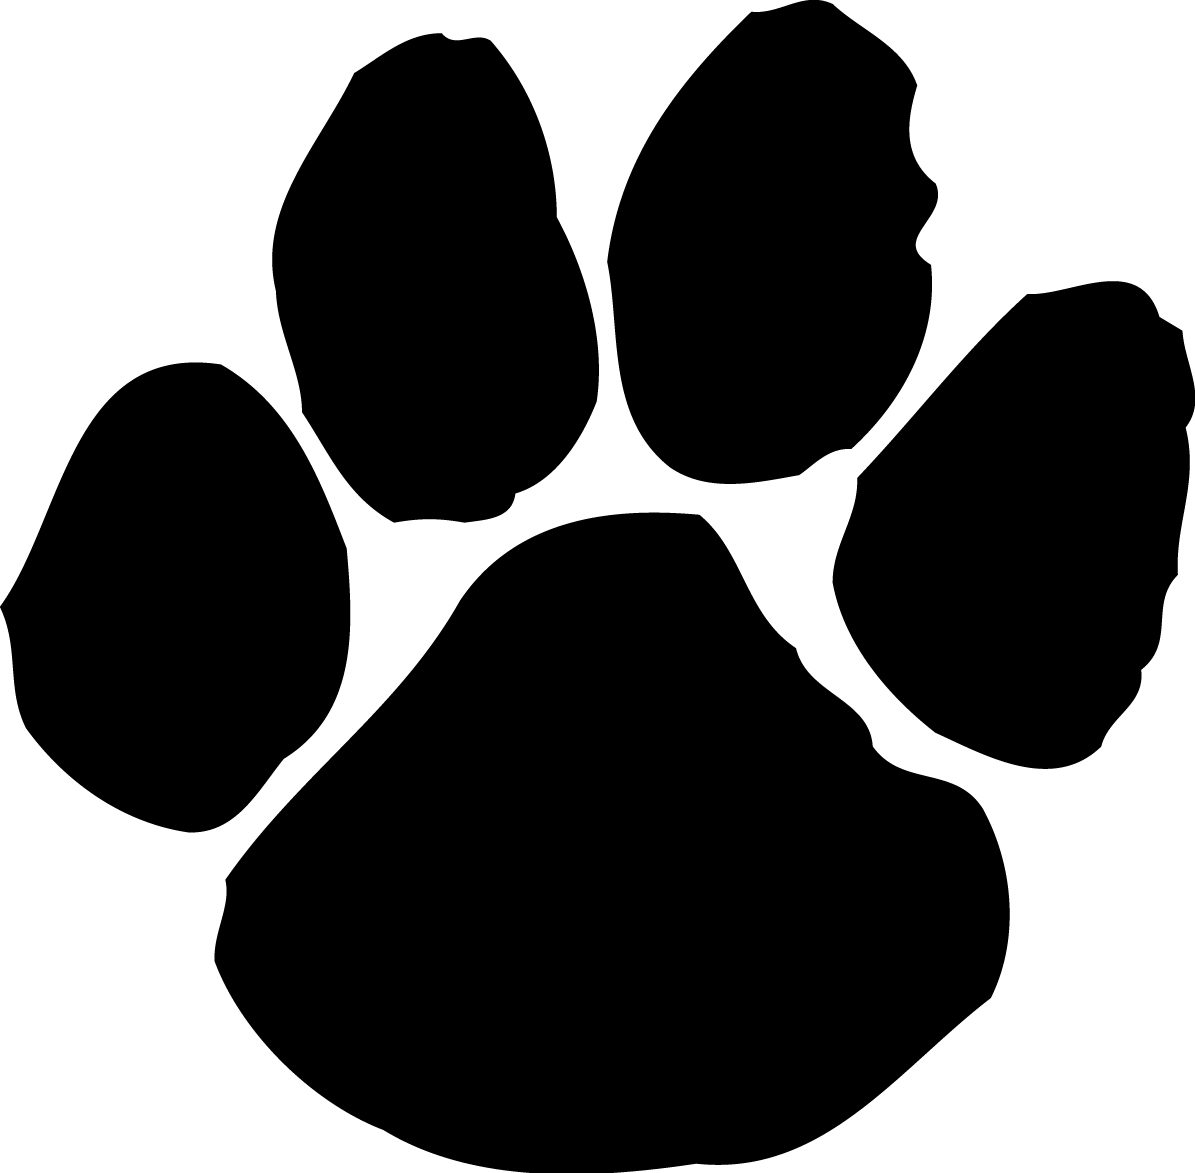 Clip Art Dog Paw Print - Clipart library-Clip Art Dog Paw Print - Clipart library-9